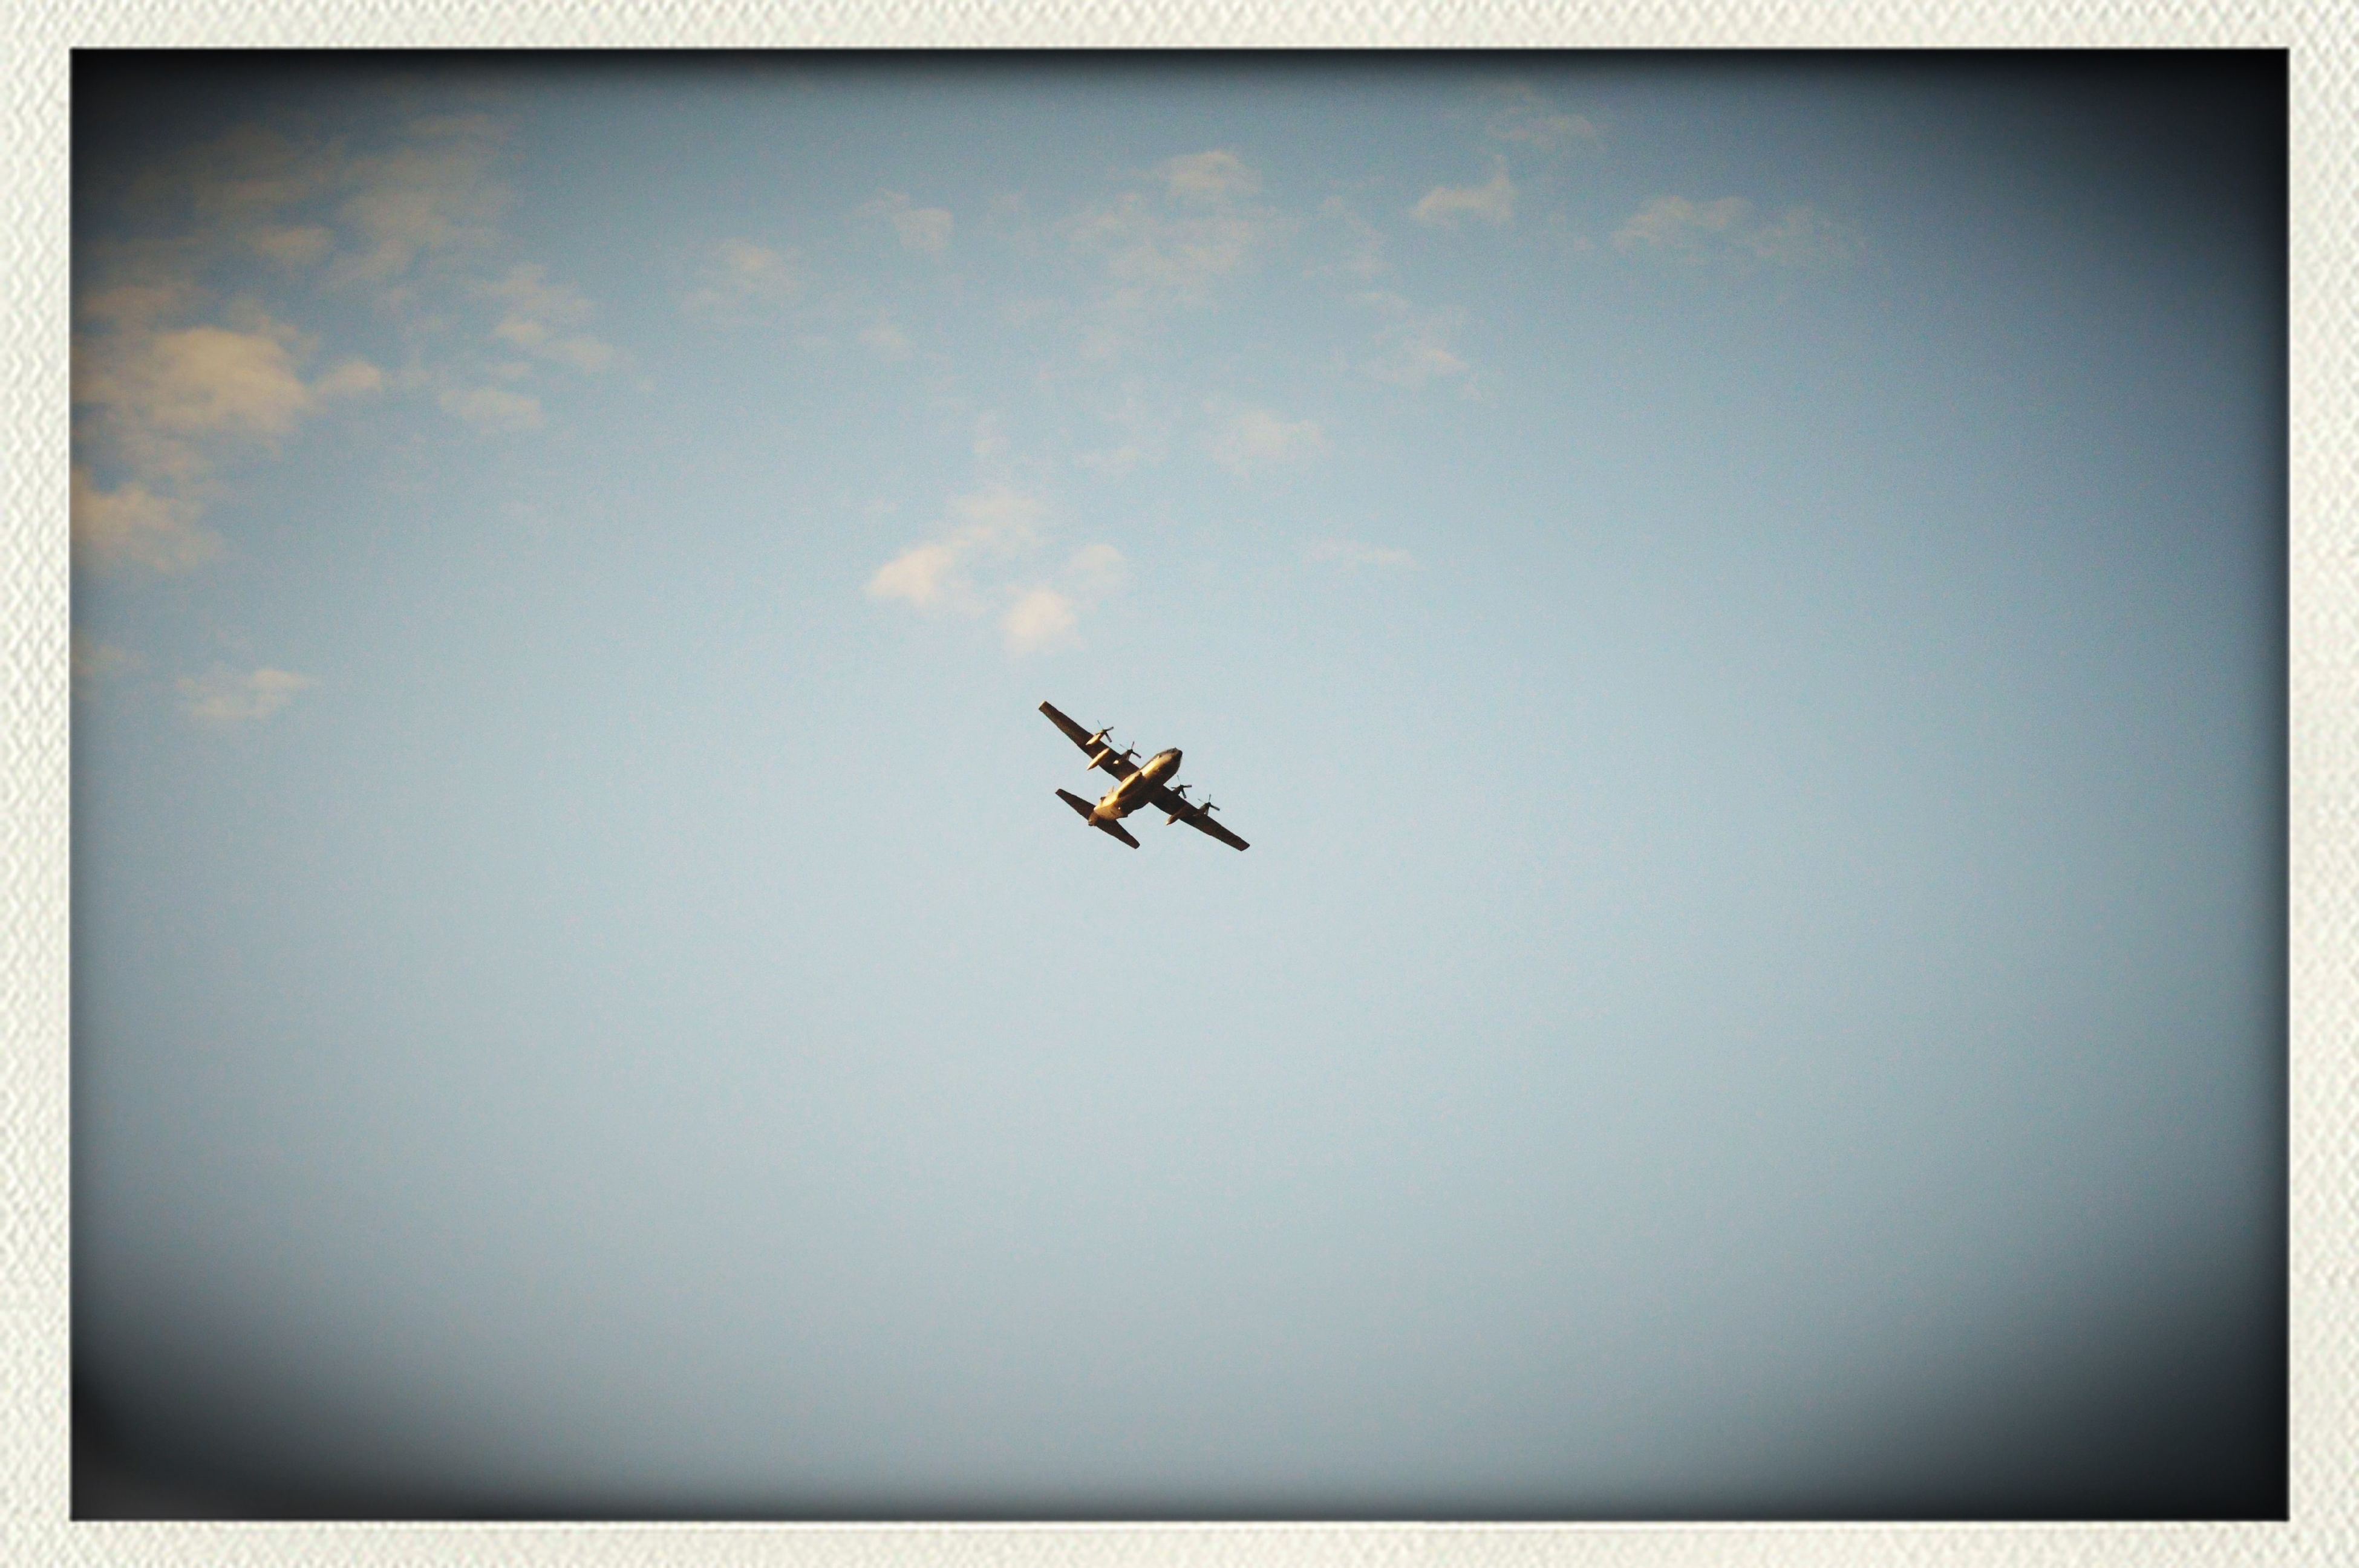 flying, airplane, air vehicle, transportation, transfer print, mode of transport, mid-air, auto post production filter, low angle view, sky, copy space, on the move, silhouette, journey, travel, blue, nature, cloud - sky, outdoors, vignette